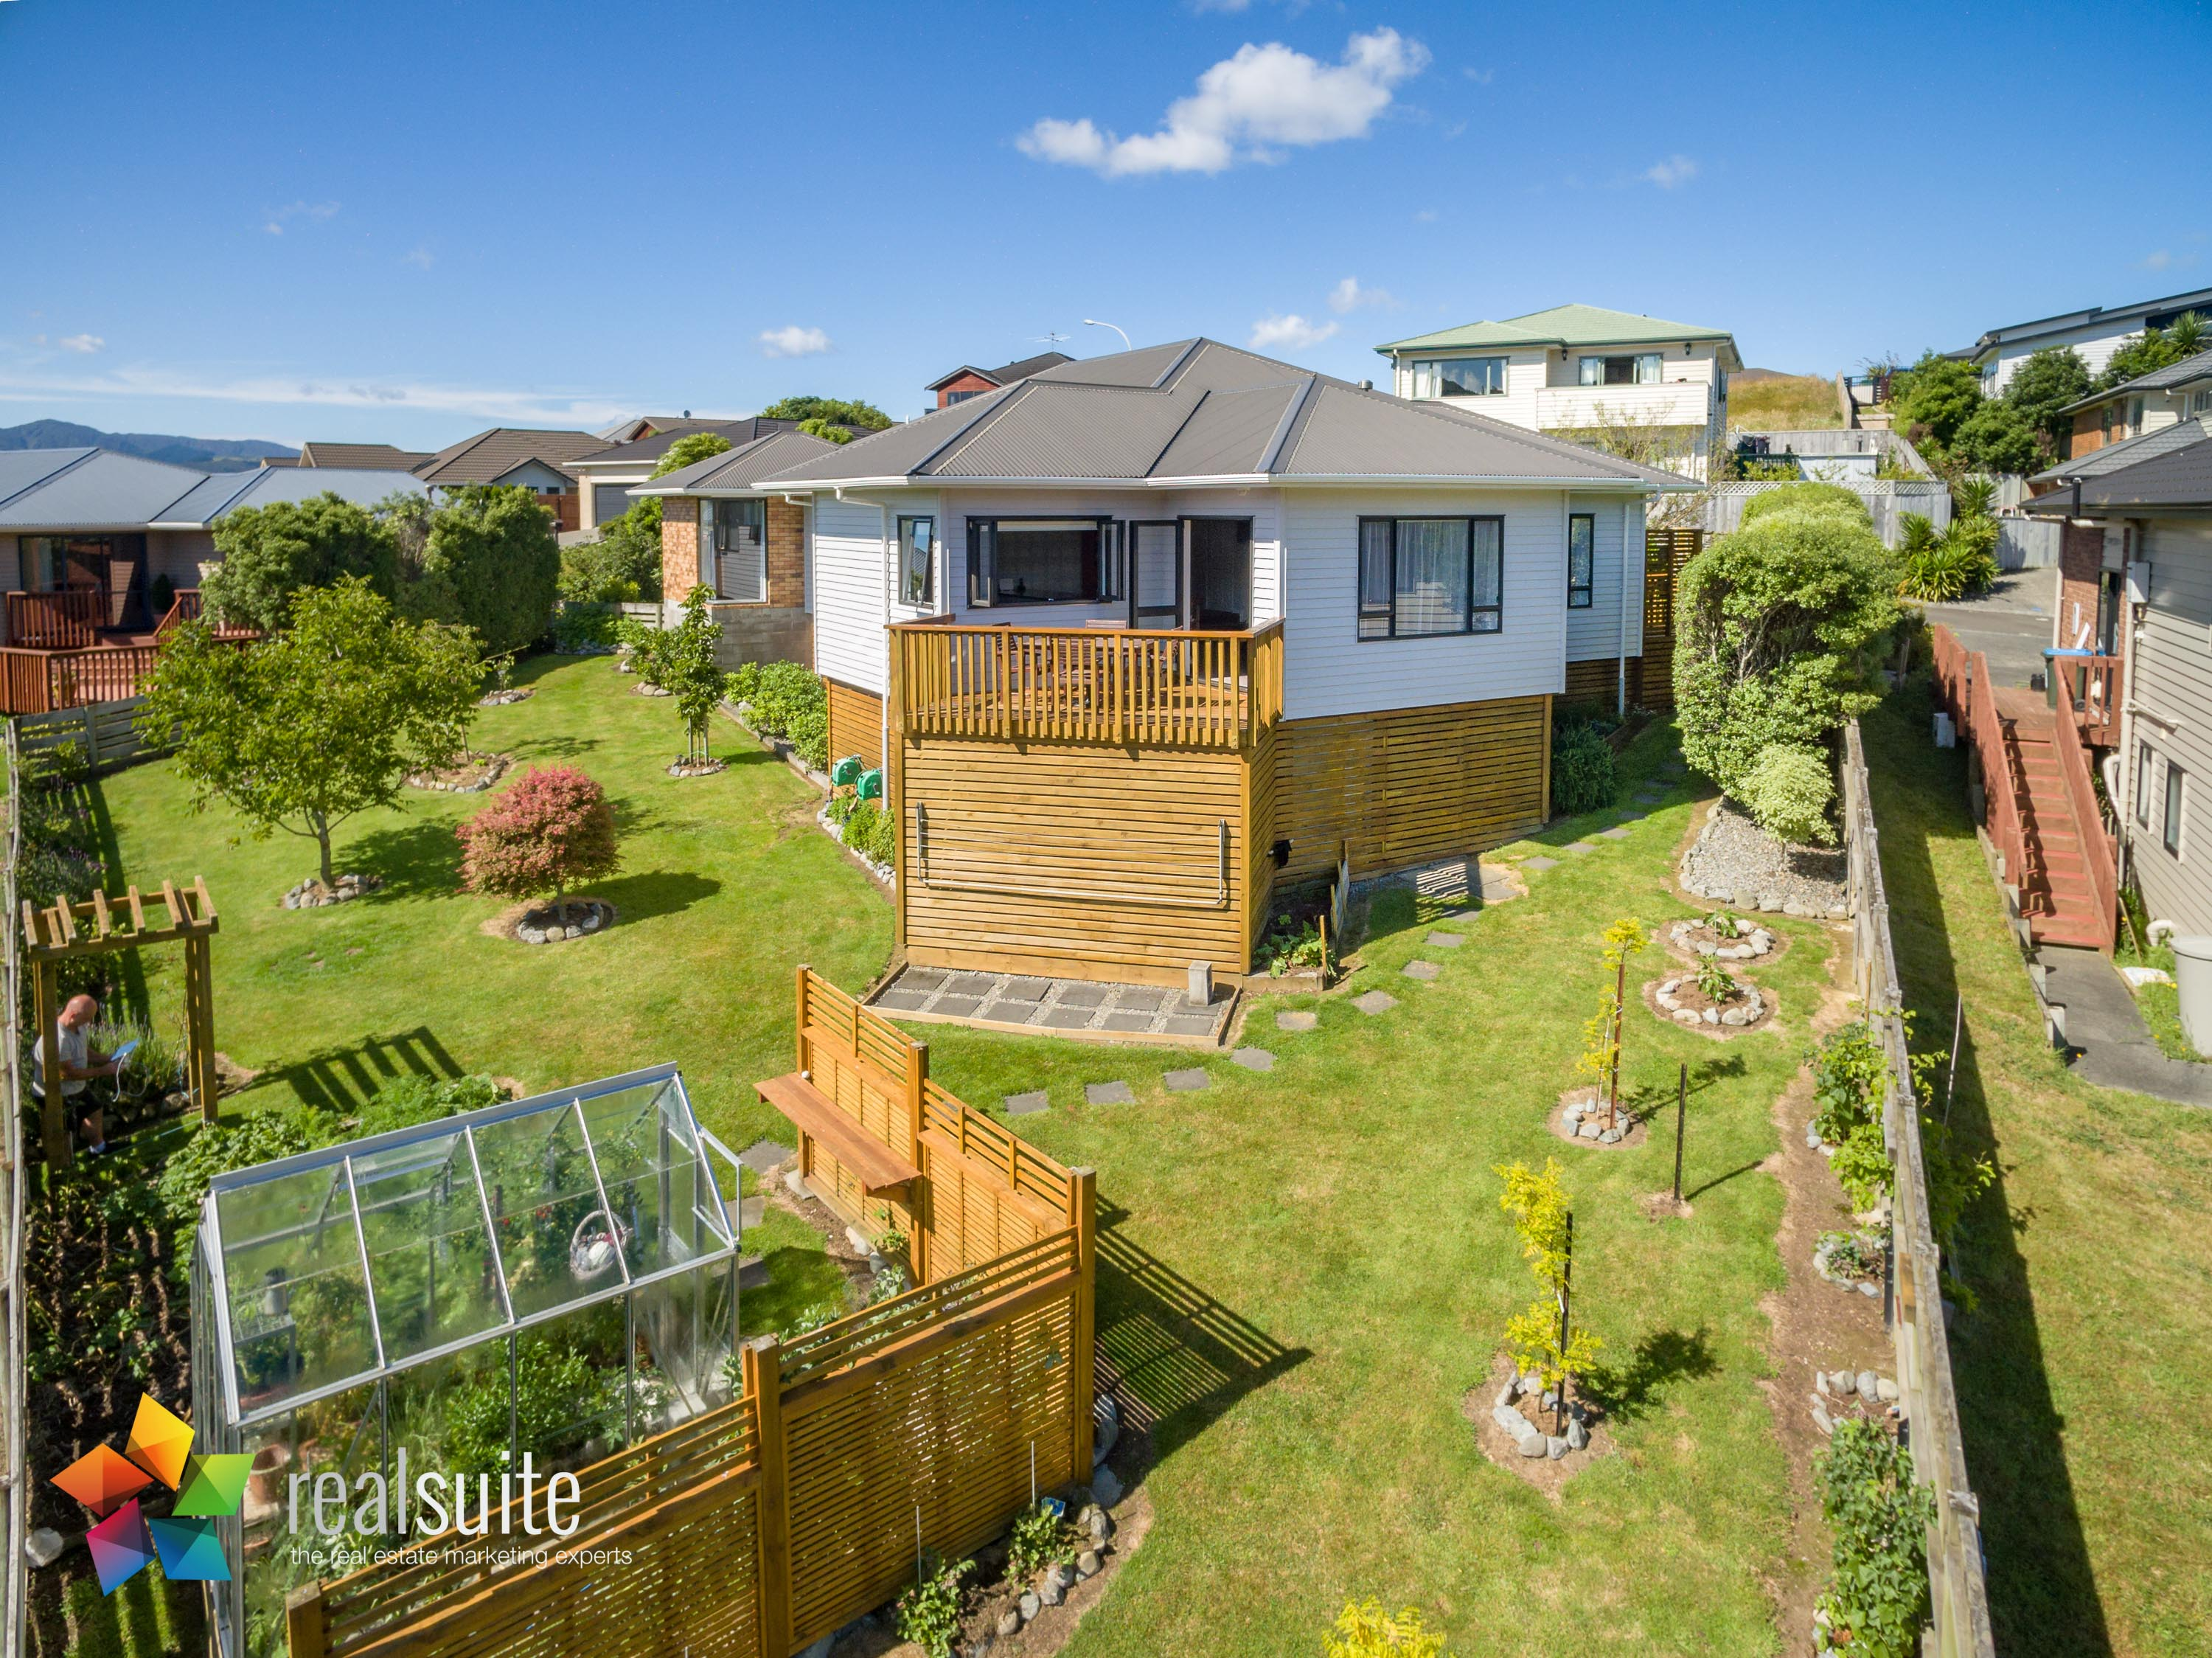 9 McEwen Crescent, Riverstone Terraces Aerial 0370